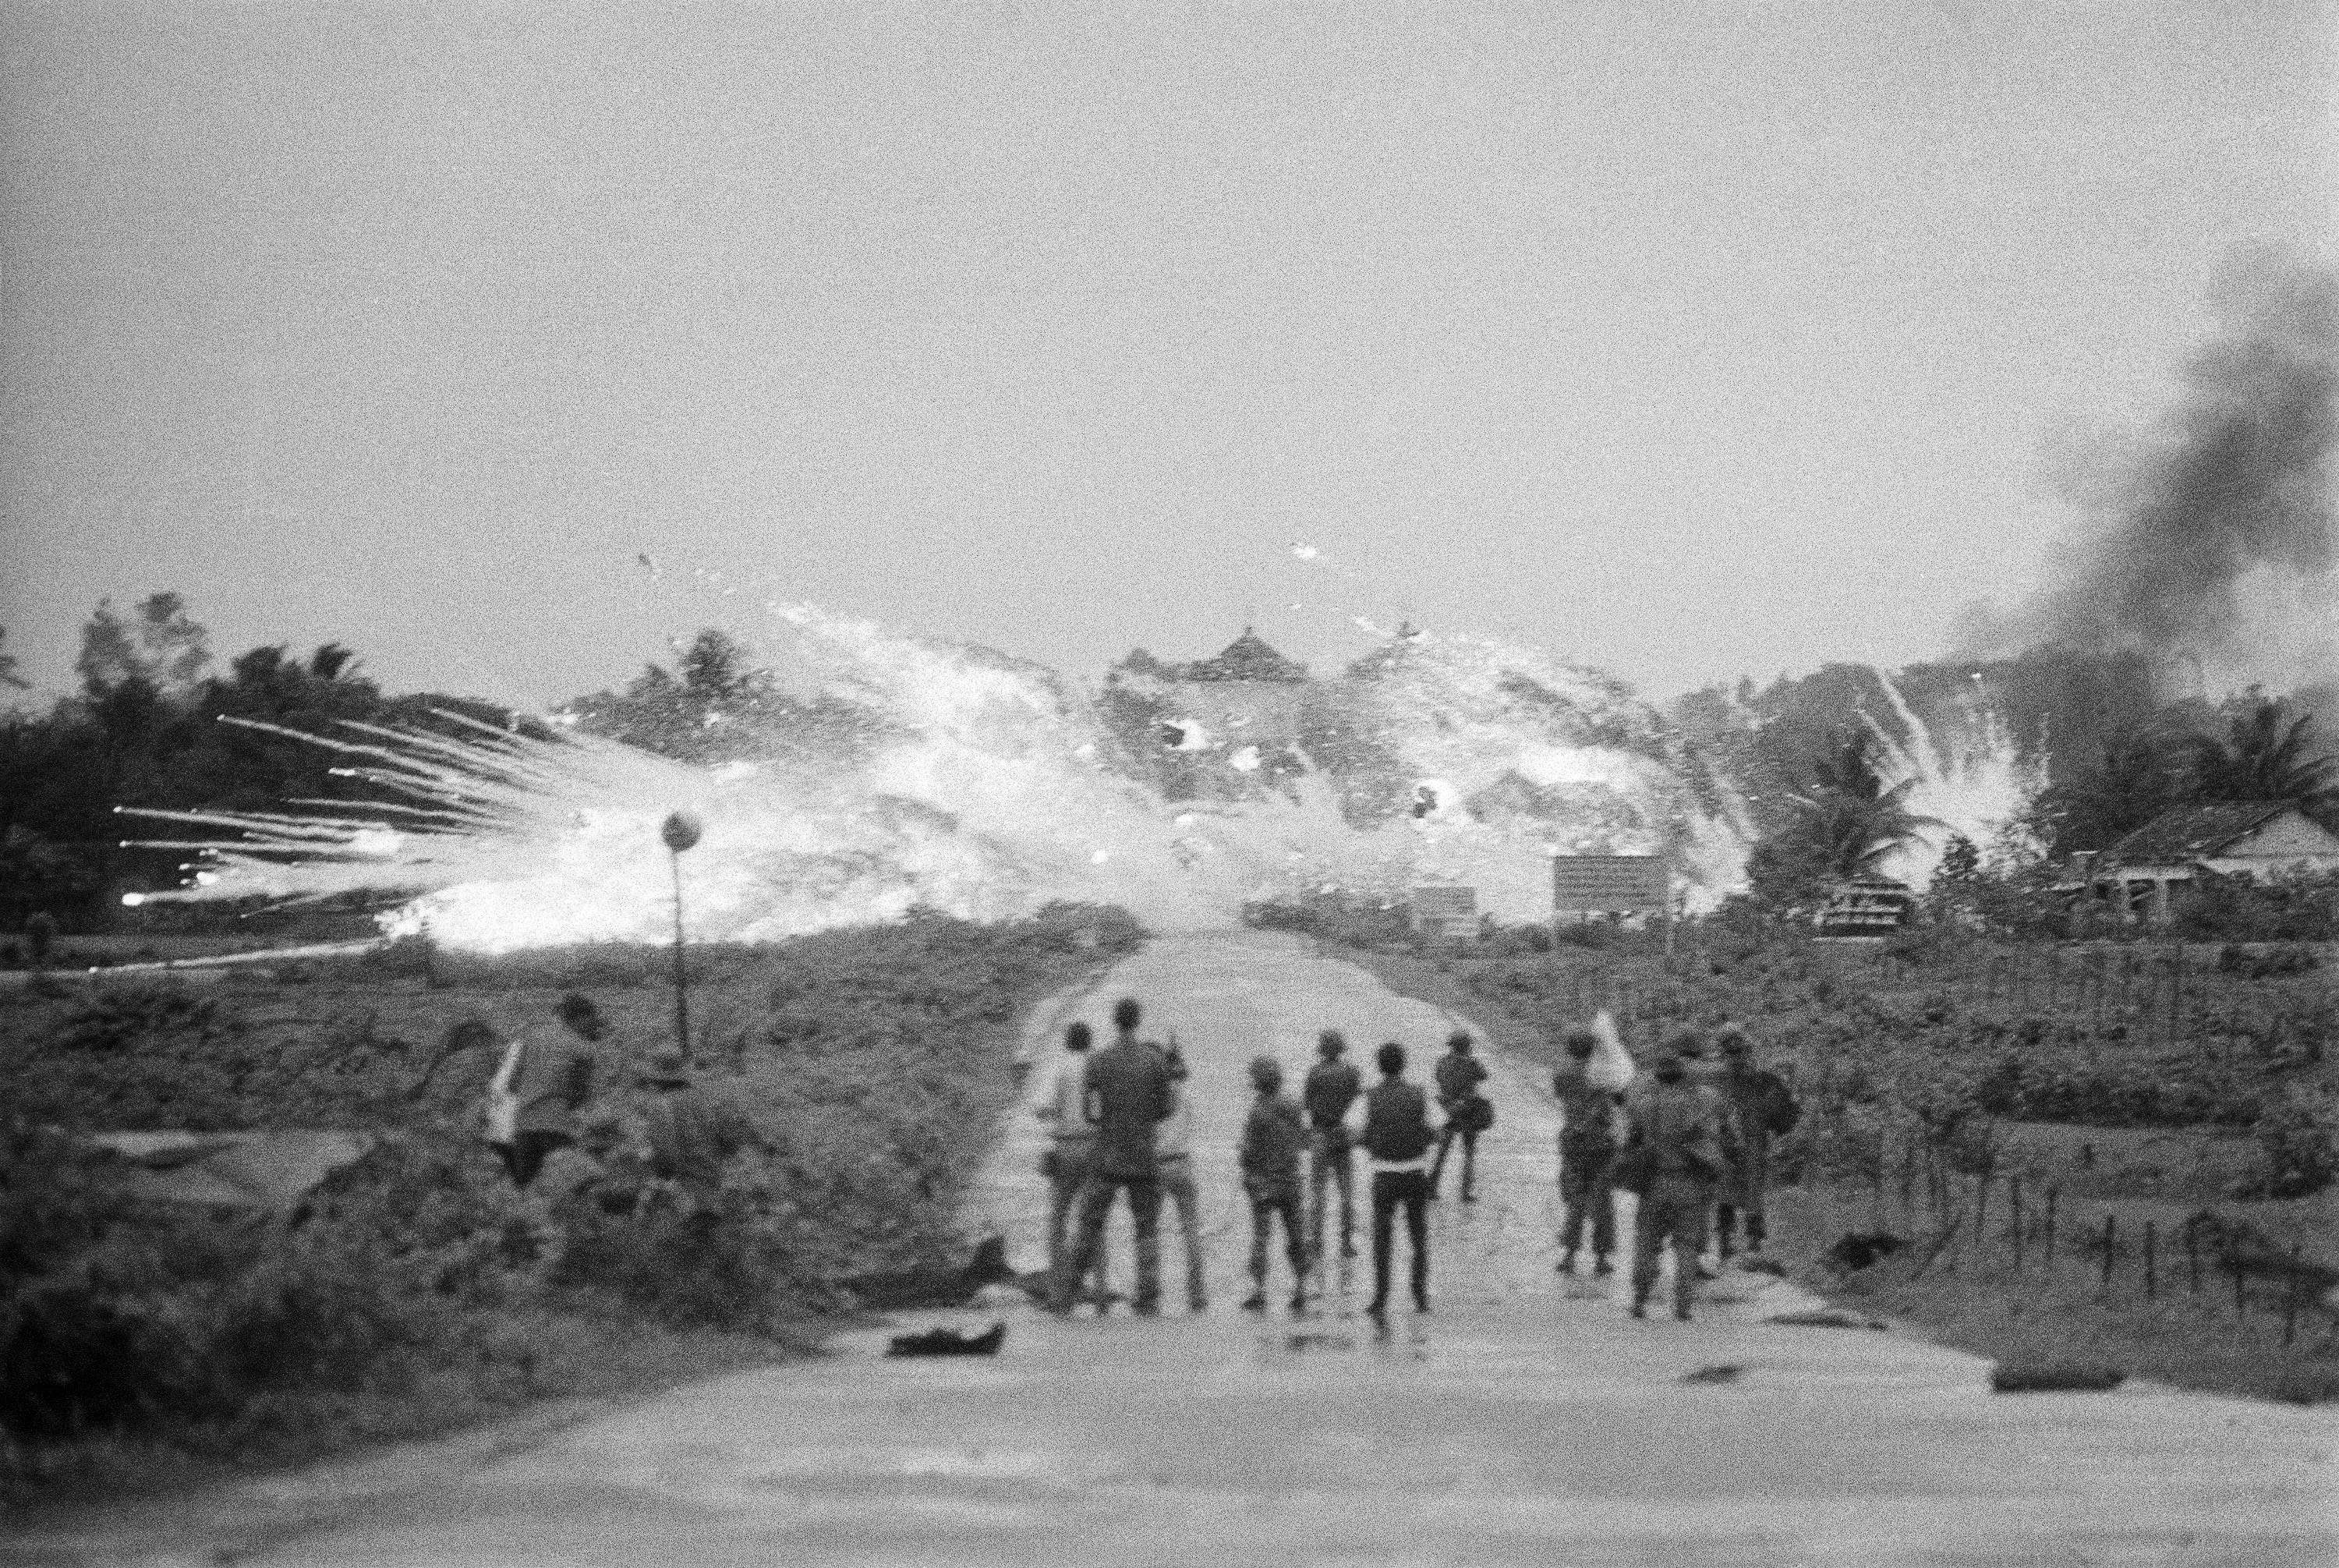 In this June 8, 1972 file photo, vombs with a mixture of napalm and white phosphorus jelly dropped by Vietnamese AF Skyraider bombers explode across Route-1, amidst homes and in front of the Cao Dai temple in the outskirts of Trang Bang, Vietnam. In the foreground are Vietnamese soldiers and journalists from various international news organizations. The towers of the Trang Bang Cao Dai temple are visible in the centre of the explosions. NICK UT/THE ASSOCIATED PRESS